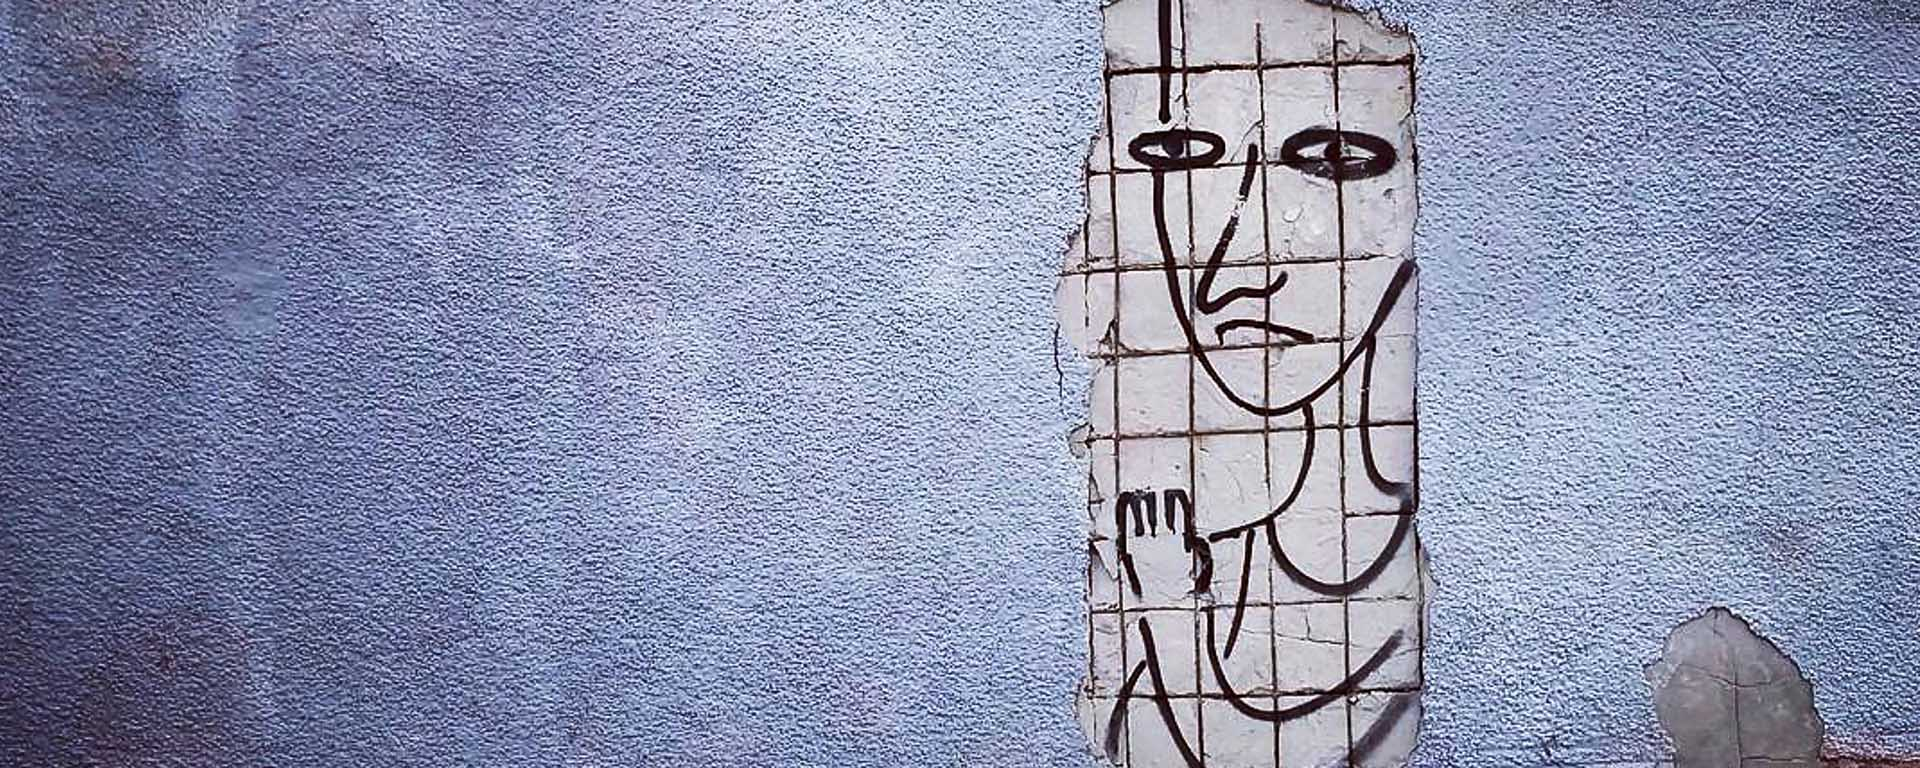 A textured wall with a poster drawing of a person behind a grid